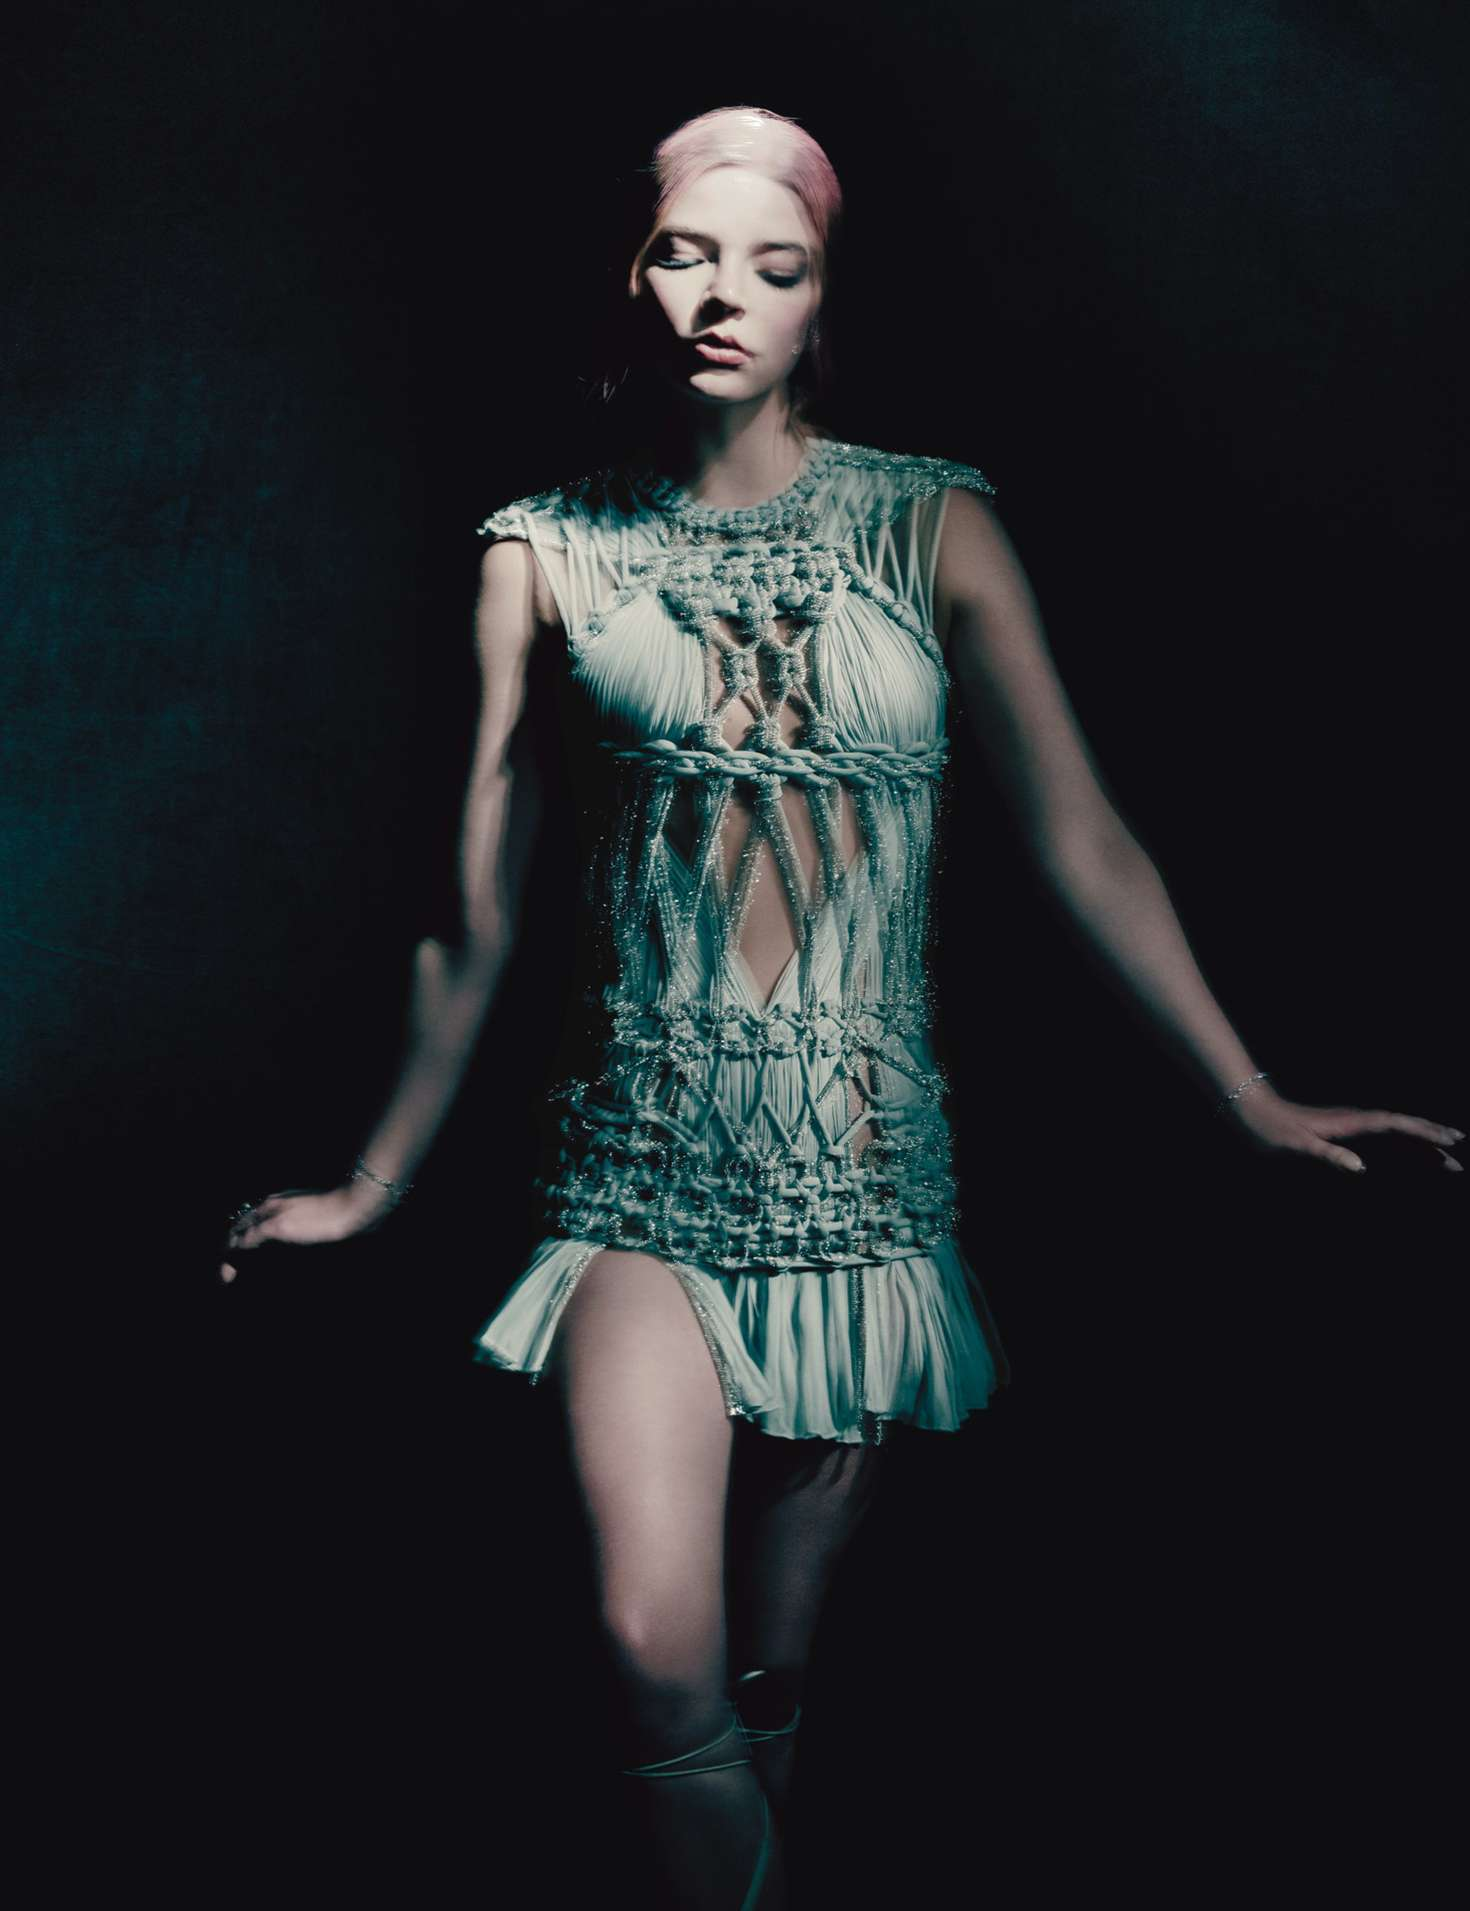 Anya taylor joy w magazine april 2019 issue naked (27 photos)